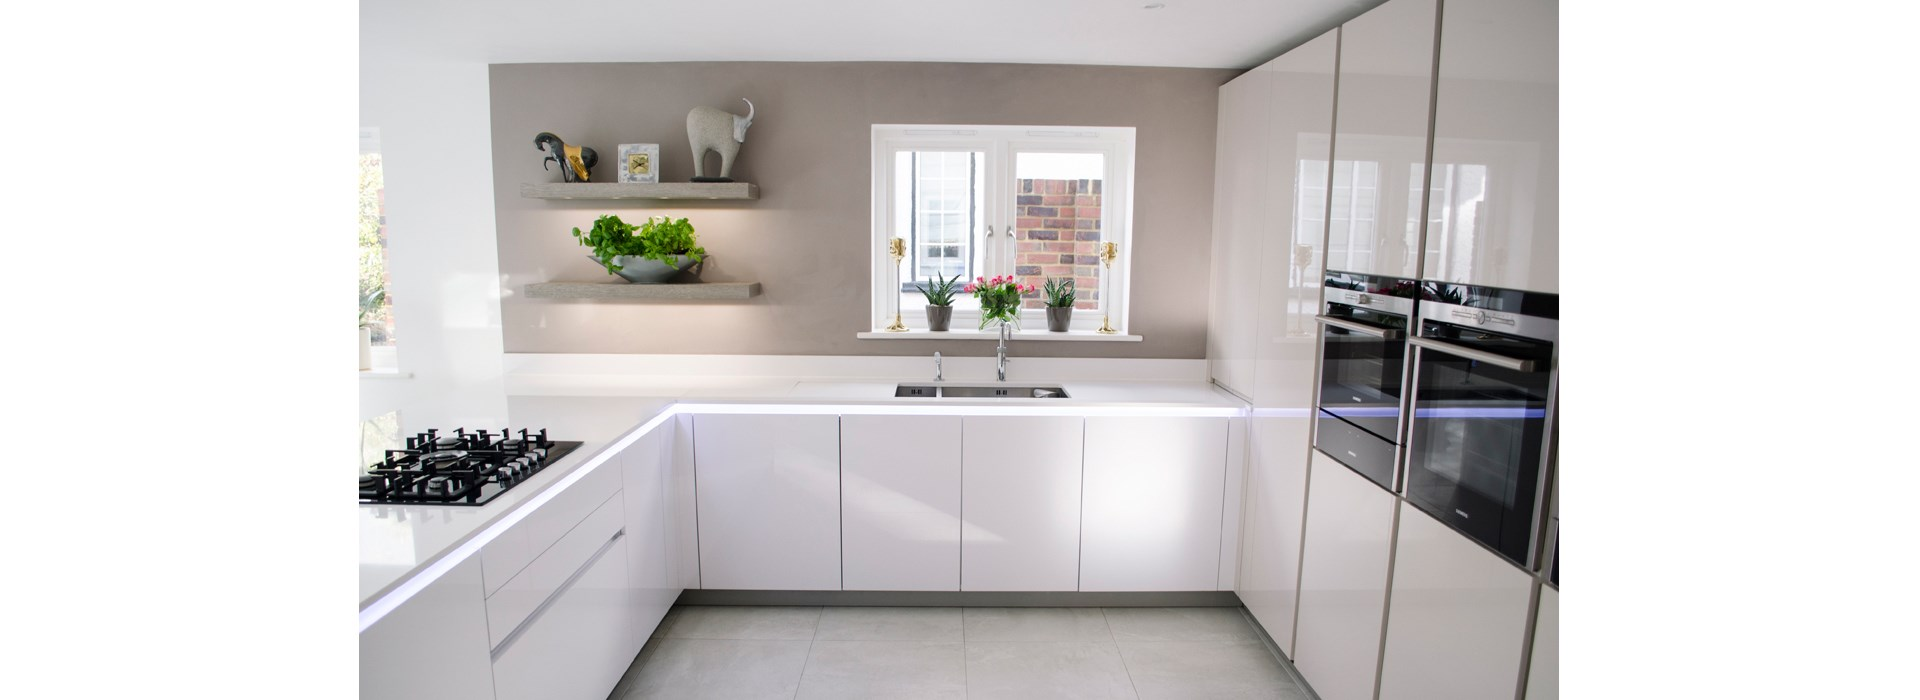 elkins - an led illuminated white kitchen